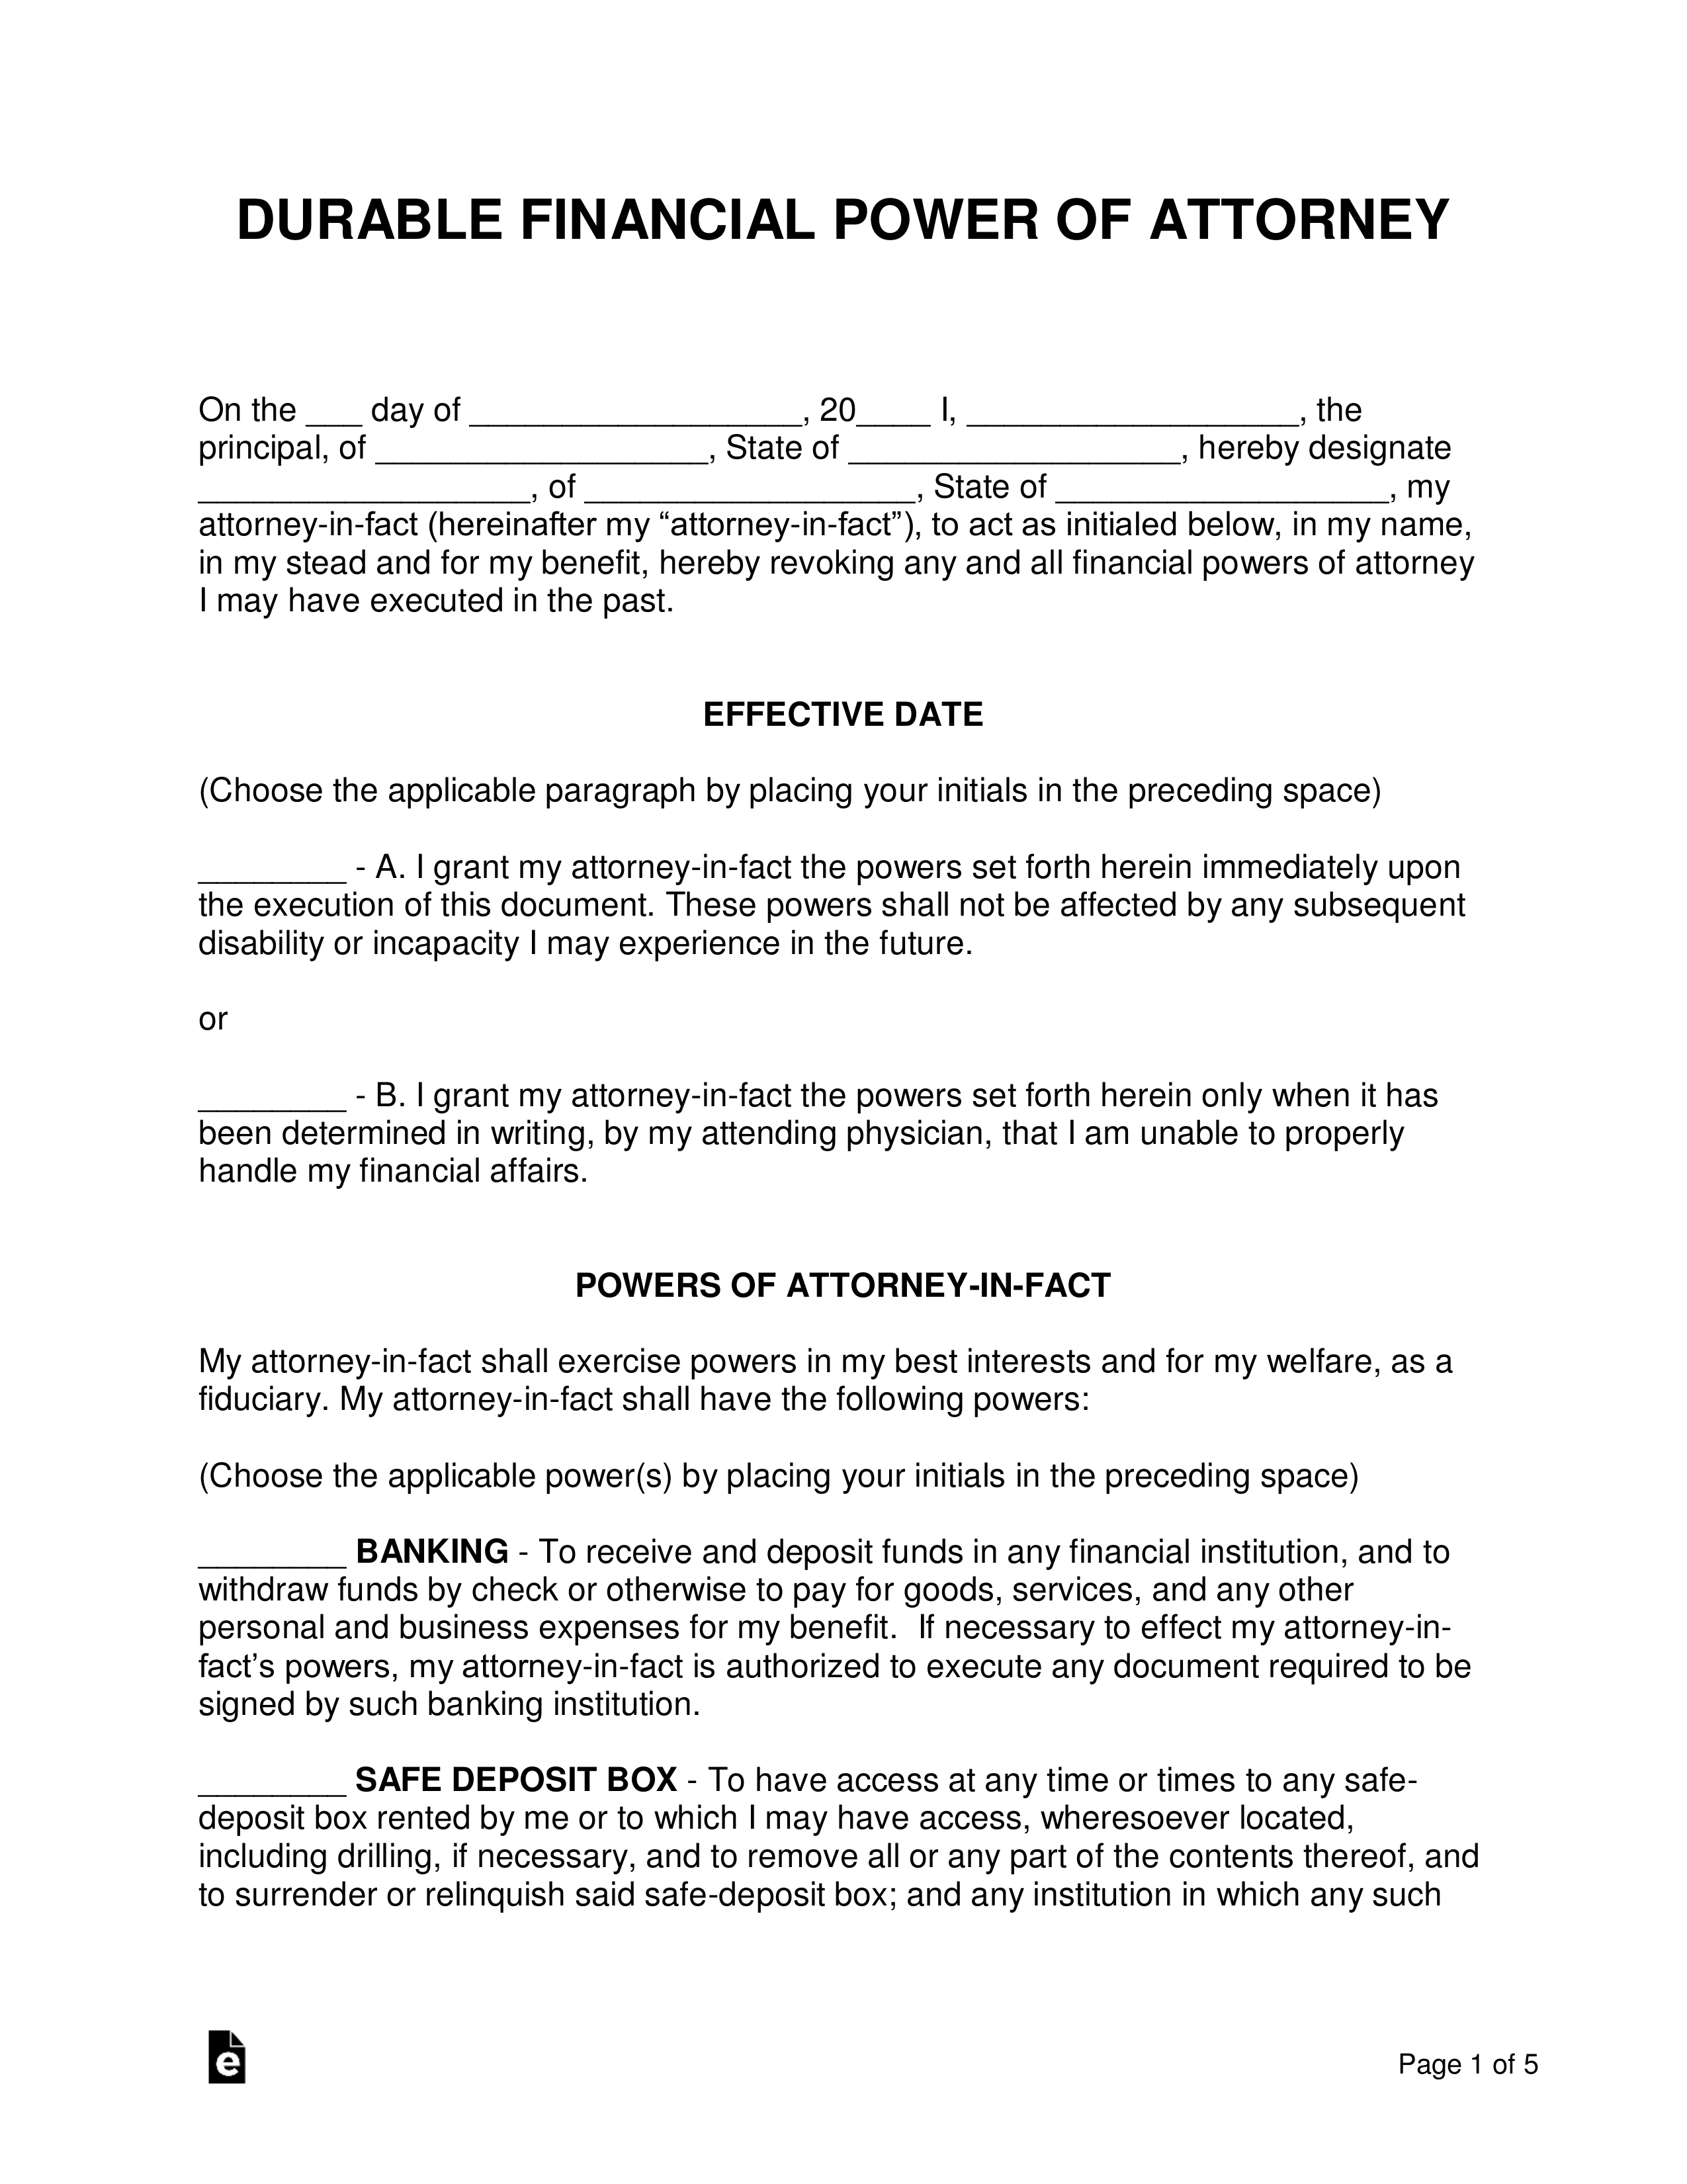 Template For Durable Power Of Attorney